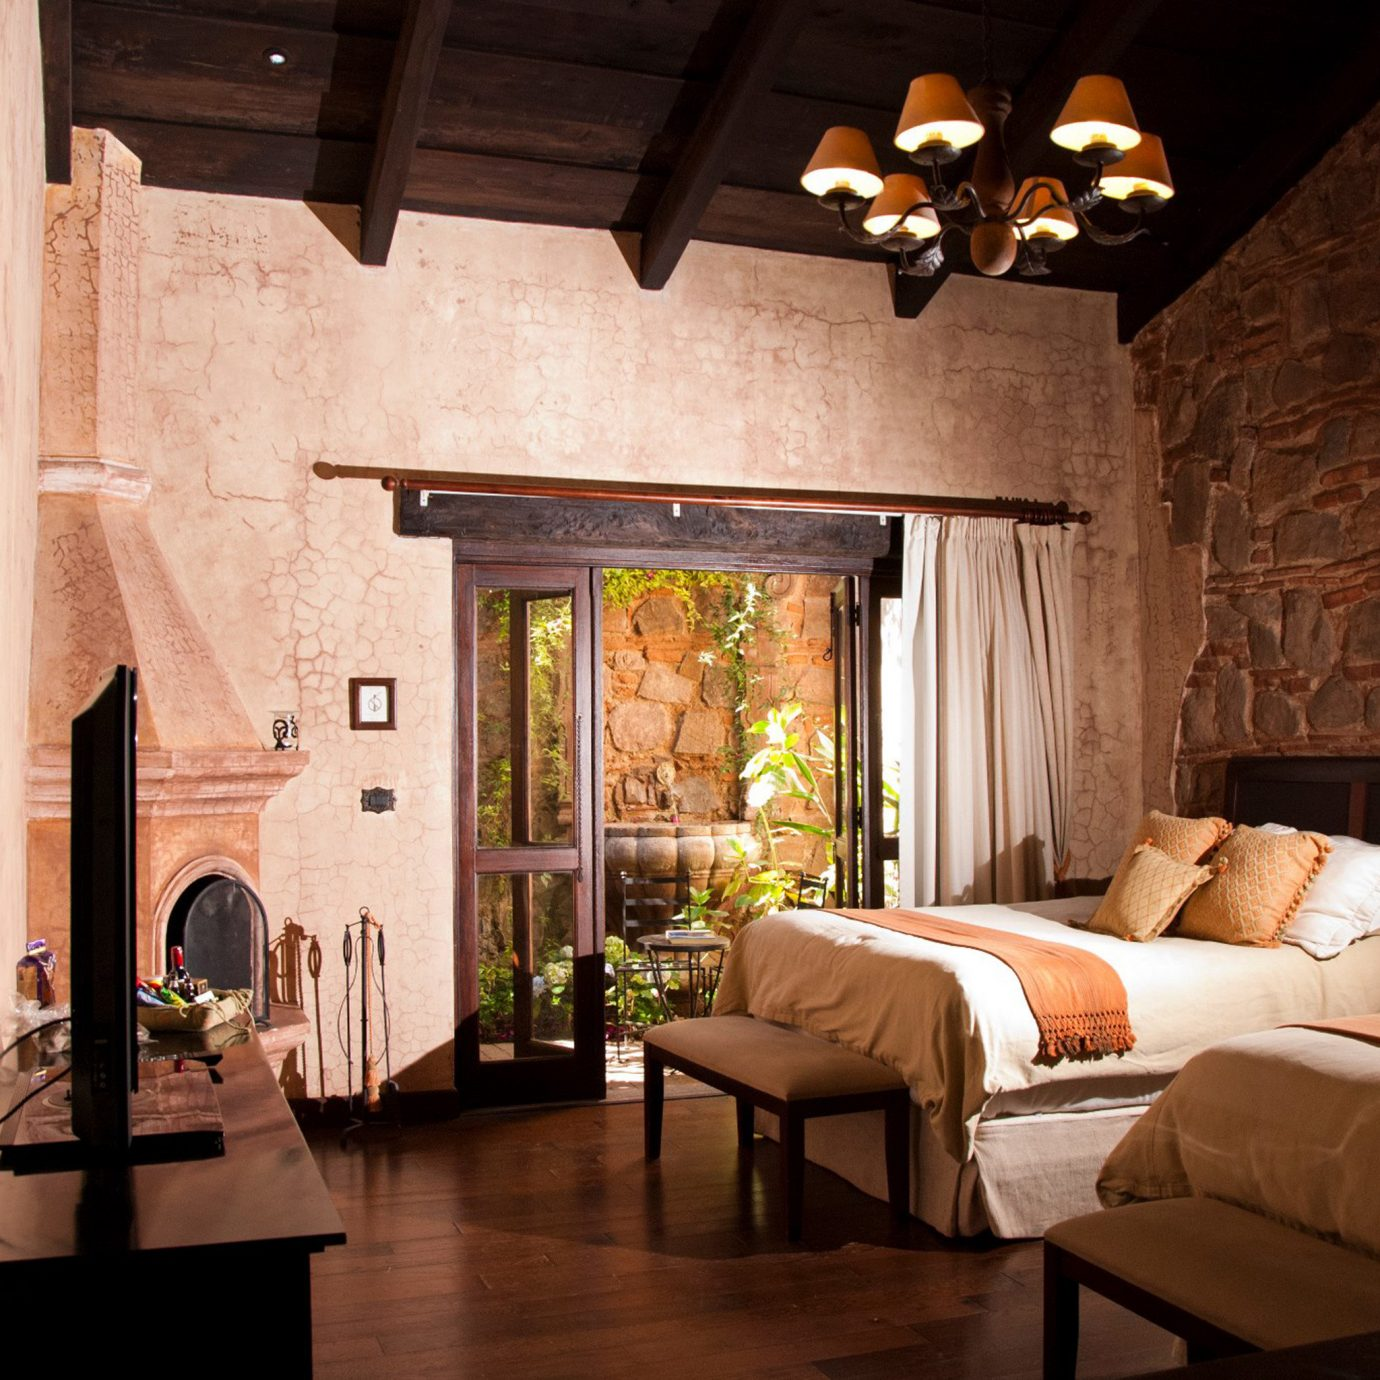 Bedroom Historic Rustic property living room house home cottage Fireplace farmhouse lighting Villa